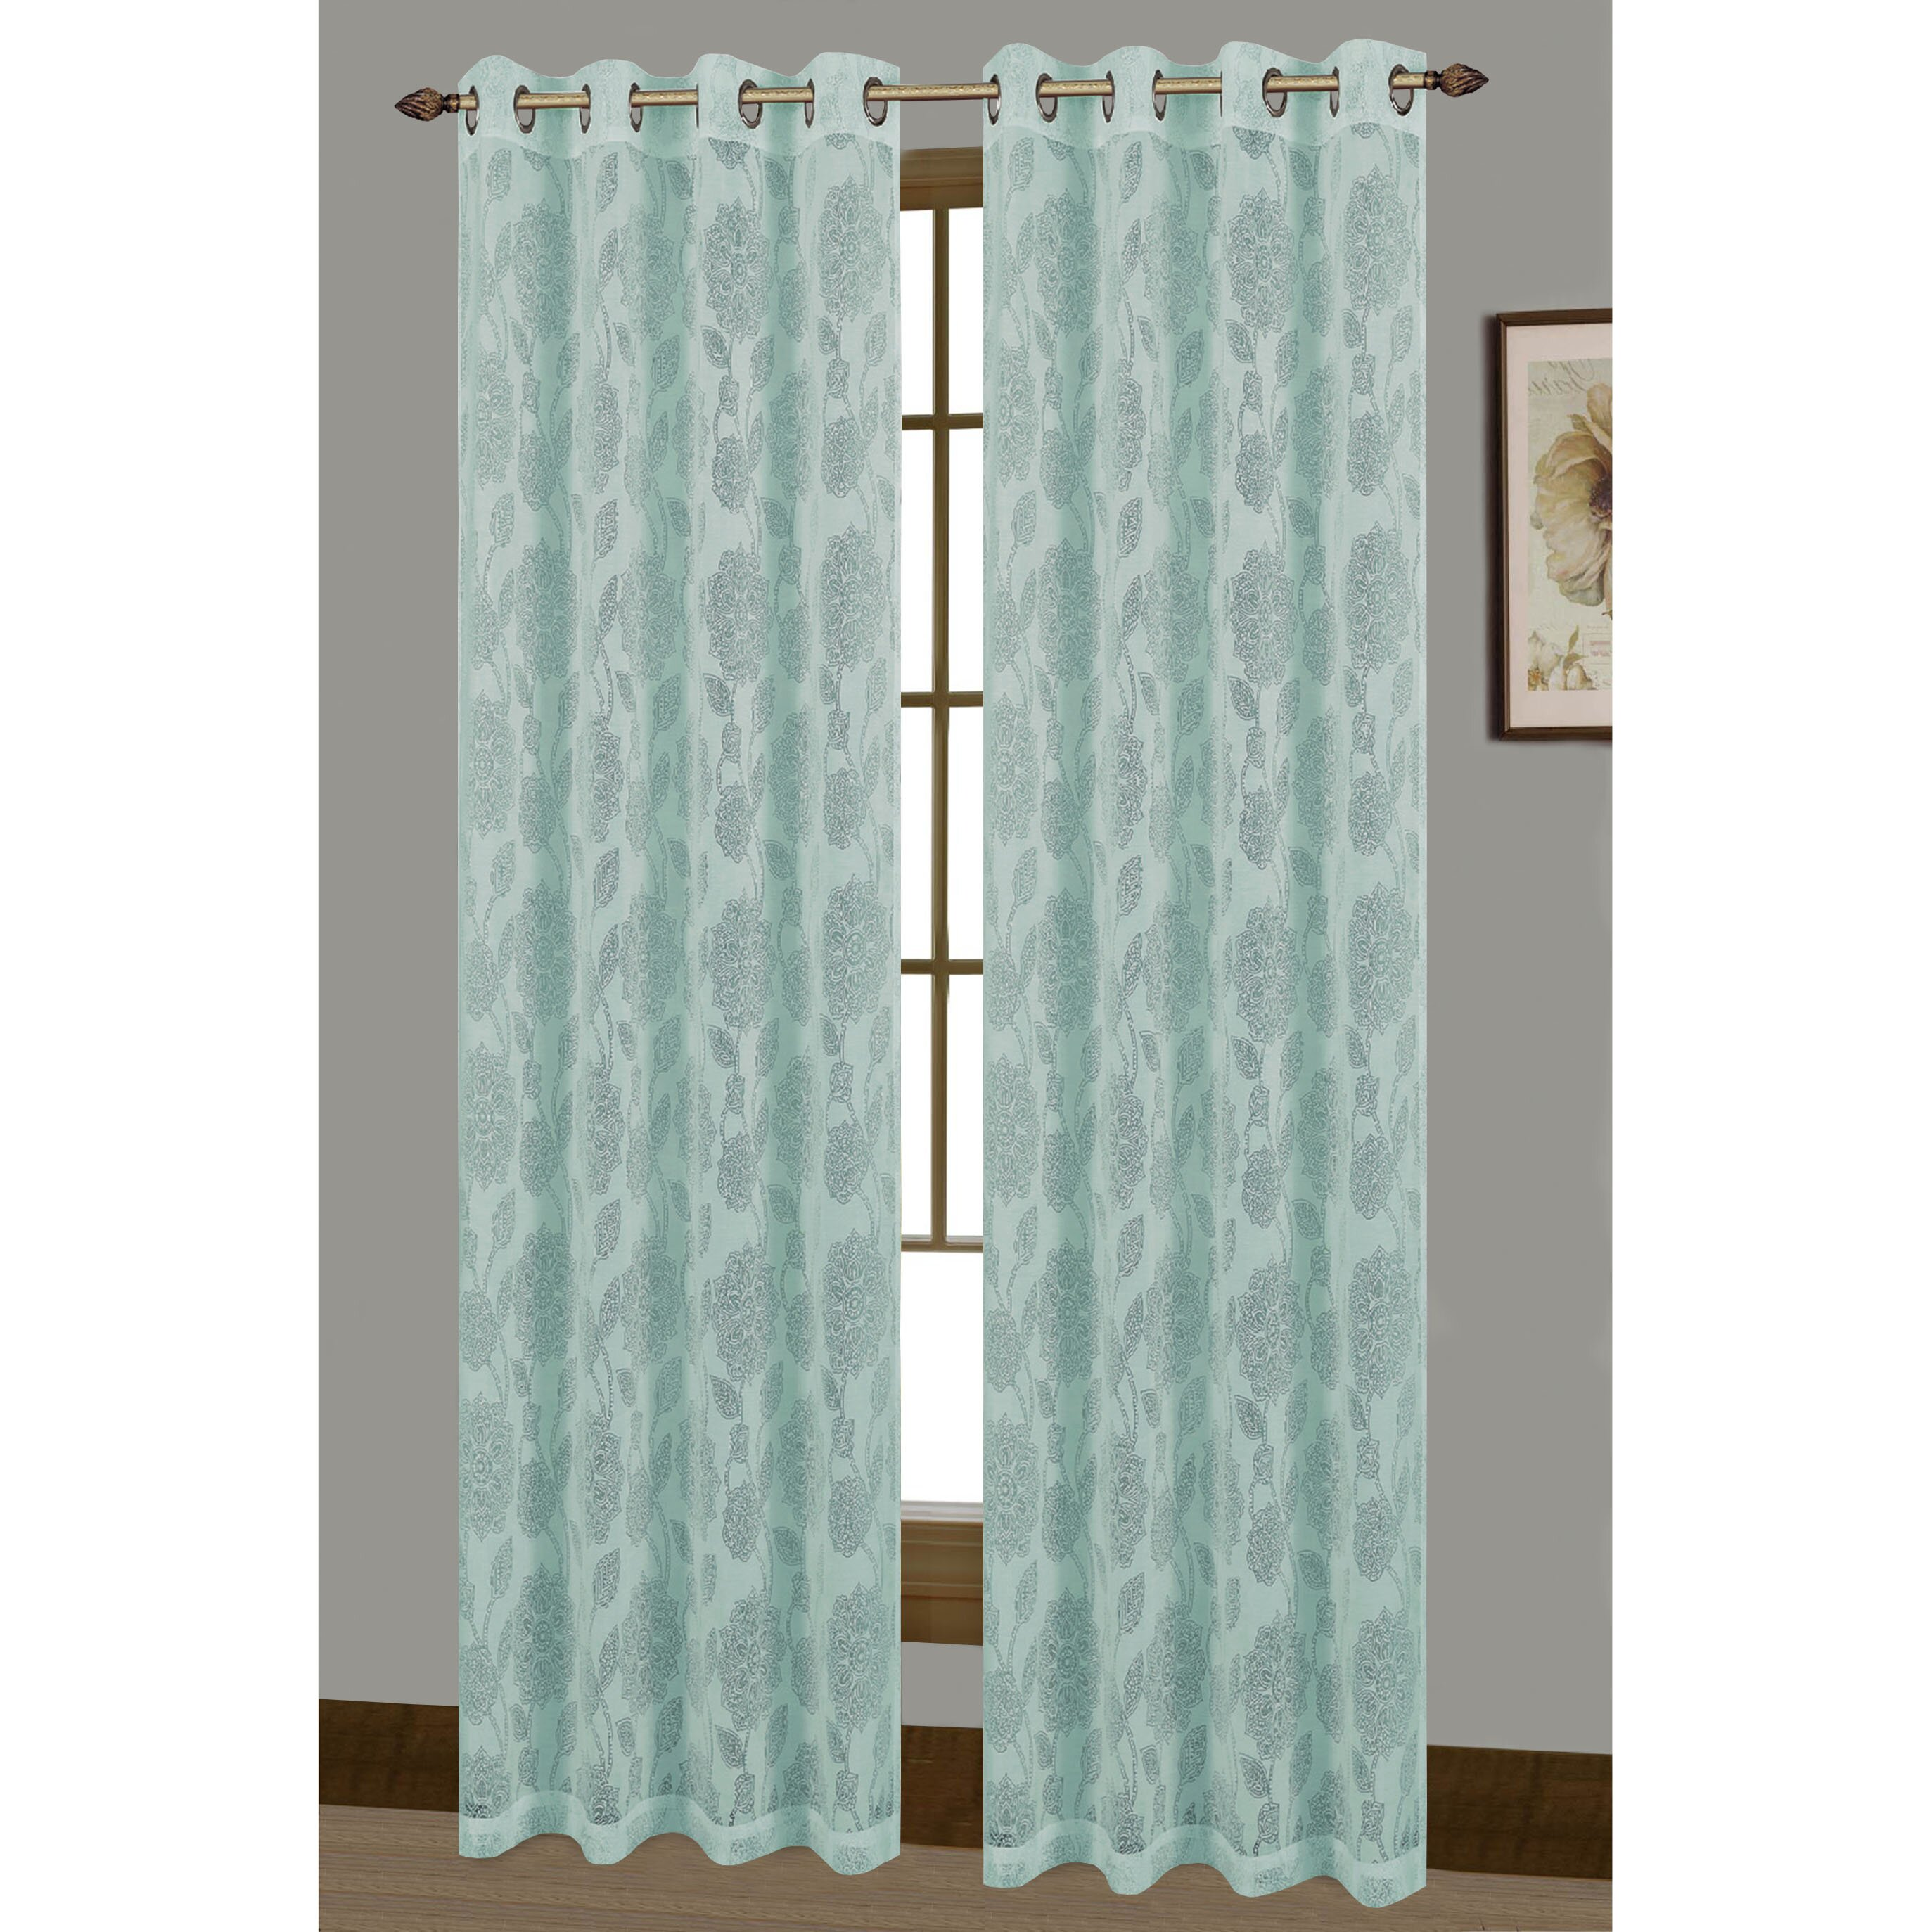 Wrap Around Curtain Rod Stretch Sheer Curtains